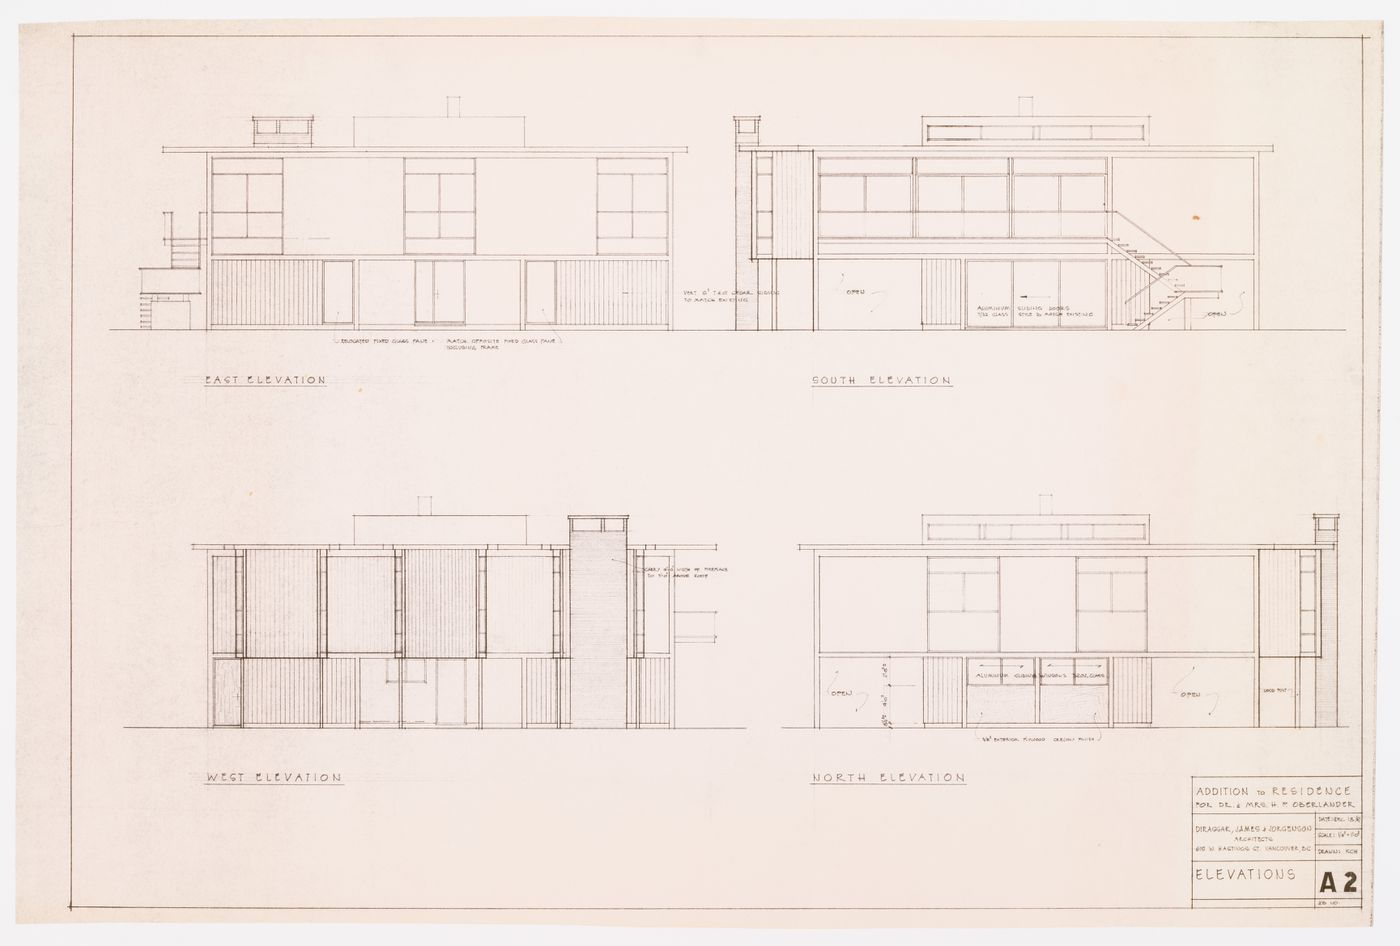 Addition to residence for Dr. & Mrs. H.P. Oberlander: elevations